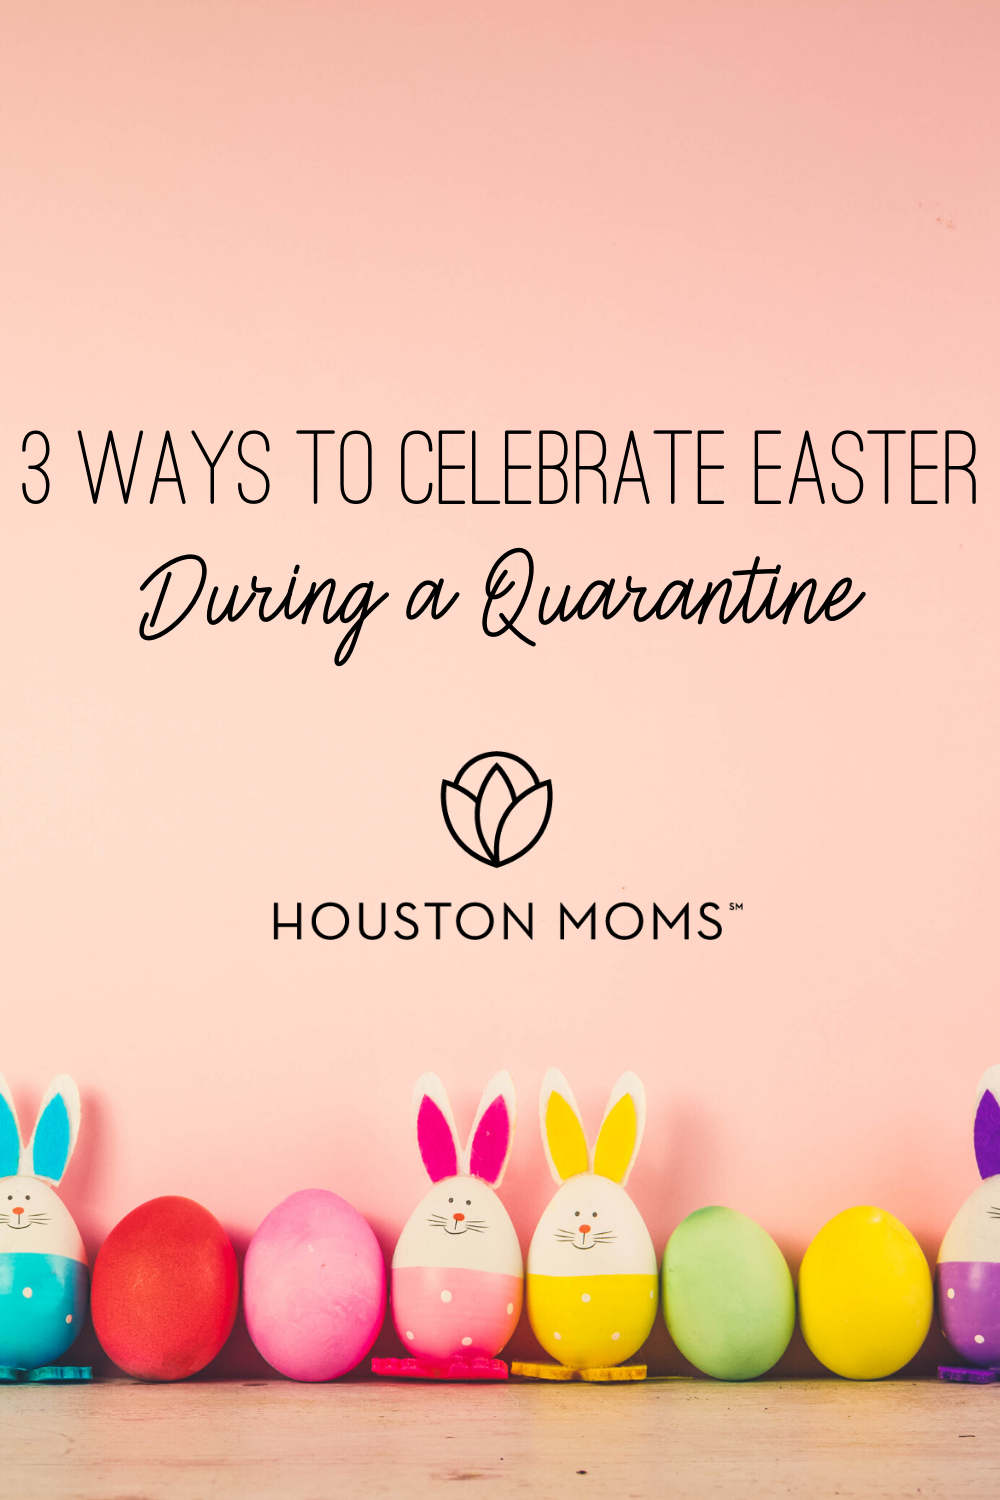 "Houston Moms ""3 Ways to Celebrate Easter During a Quarantine"" #houstonmoms #houstonmomsblog #momsaroundhouston"